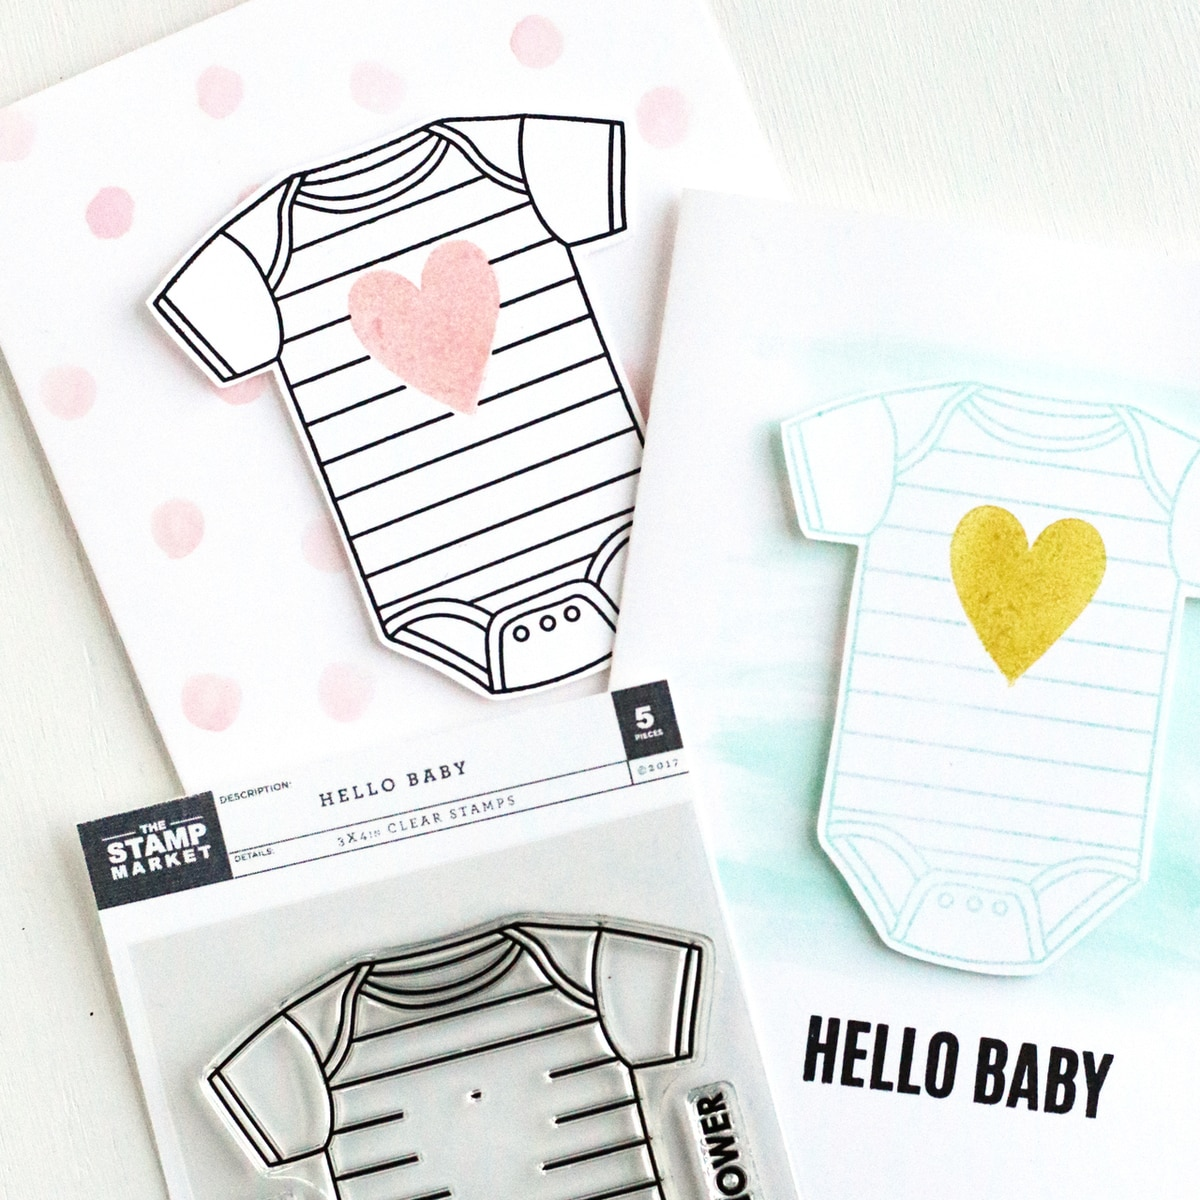 The Stamp Market Stamp - Hello Baby